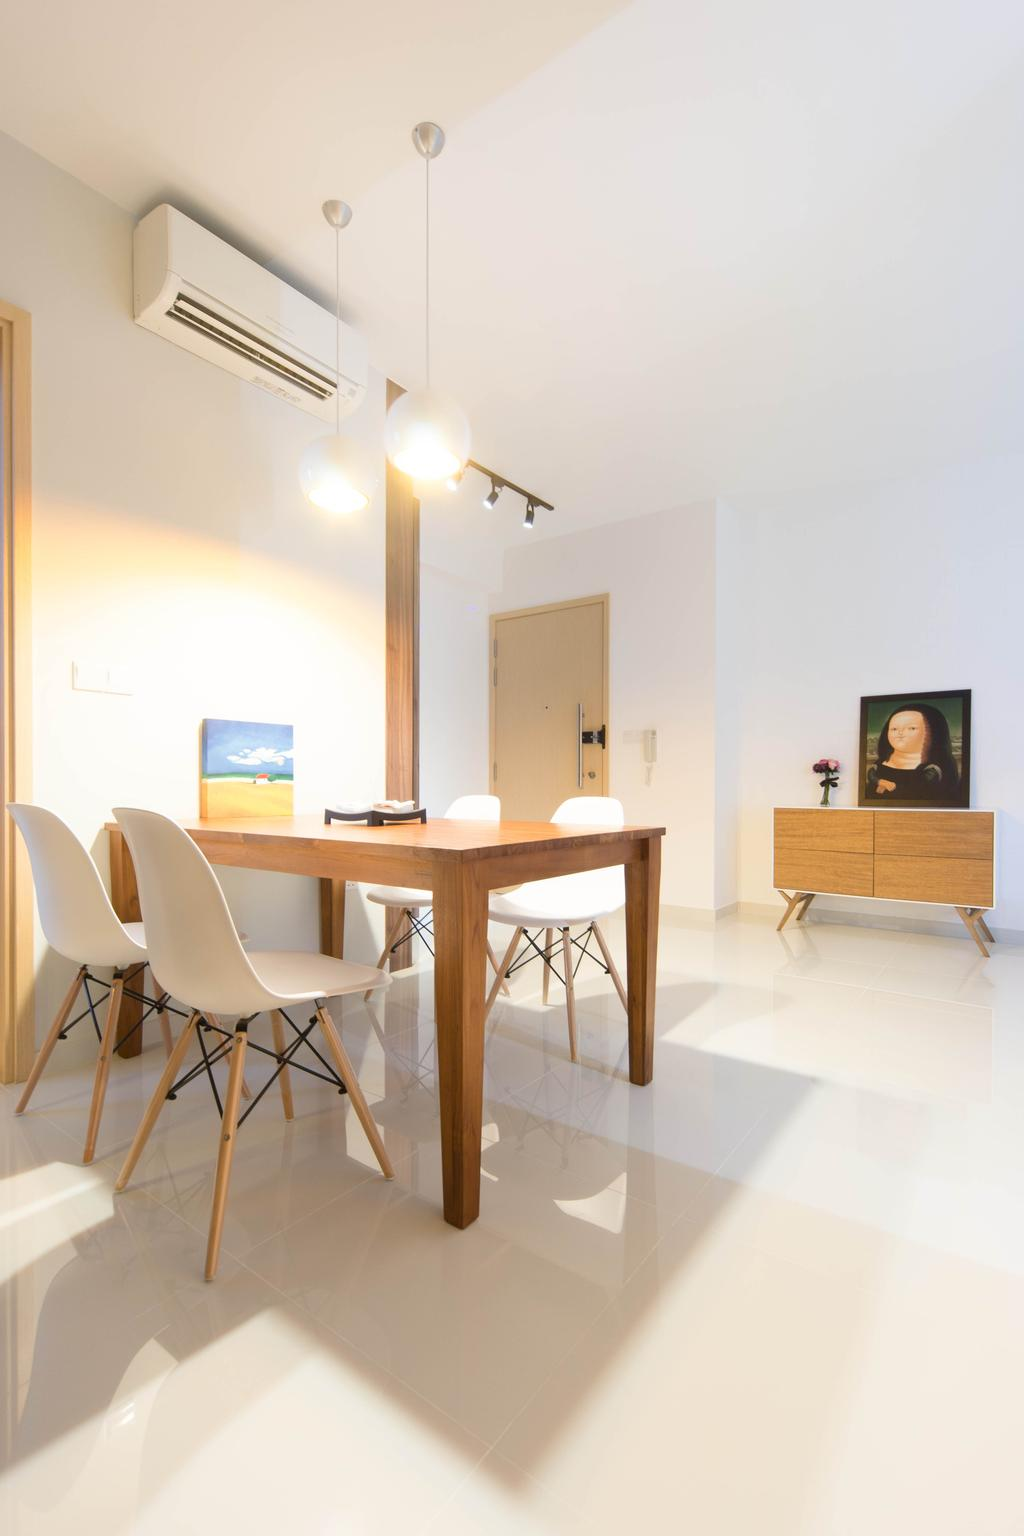 Scandinavian, Condo, Dining Room, Esparina Residences, Interior Designer, Unity ID, Dining Table, Chair, Hanging Light, Lighting, Woodwork, Wood Laminate, Wood, Laminate, Painting, Mantlepiece, Cabinet, White